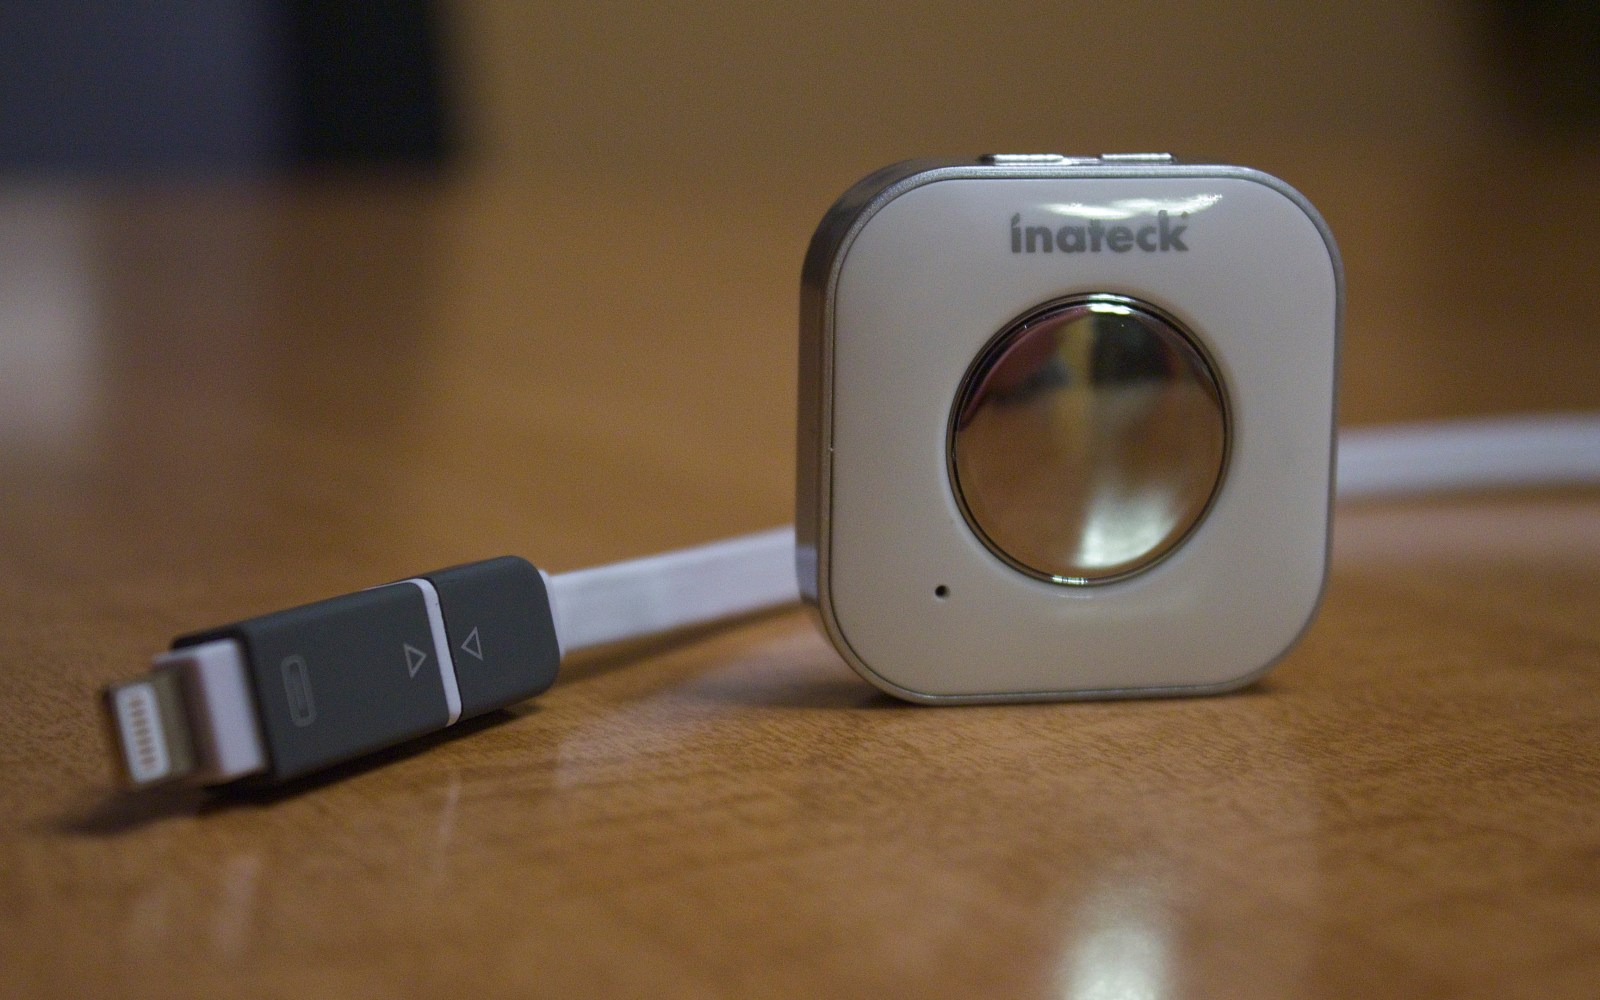 Review combo: Inateck Bluetooth Audio Receiver and Micro USB Cable with Lightning Adapter